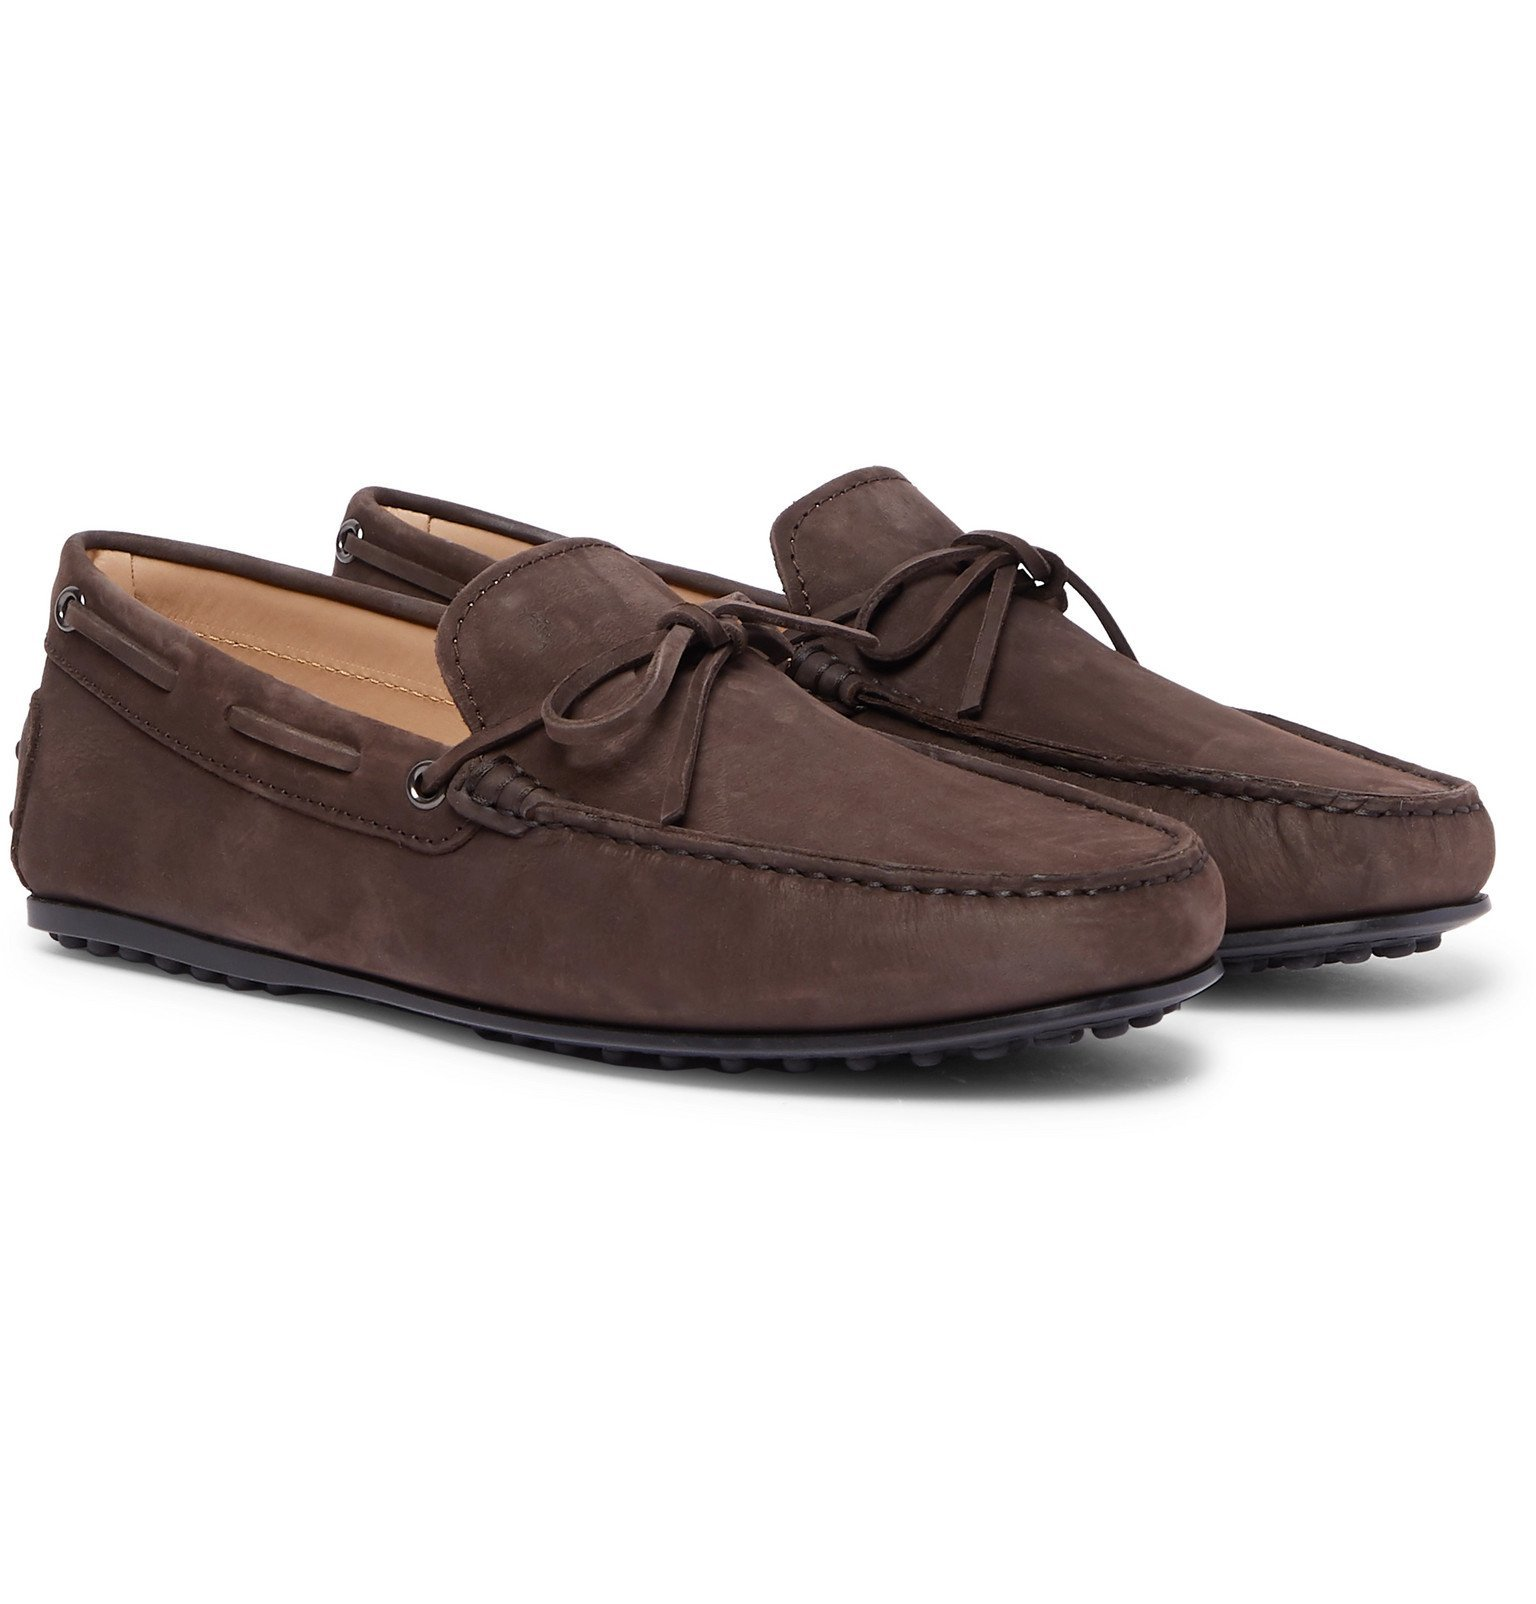 Tod's - City Gommino Nubuck Driving Shoes - Brown